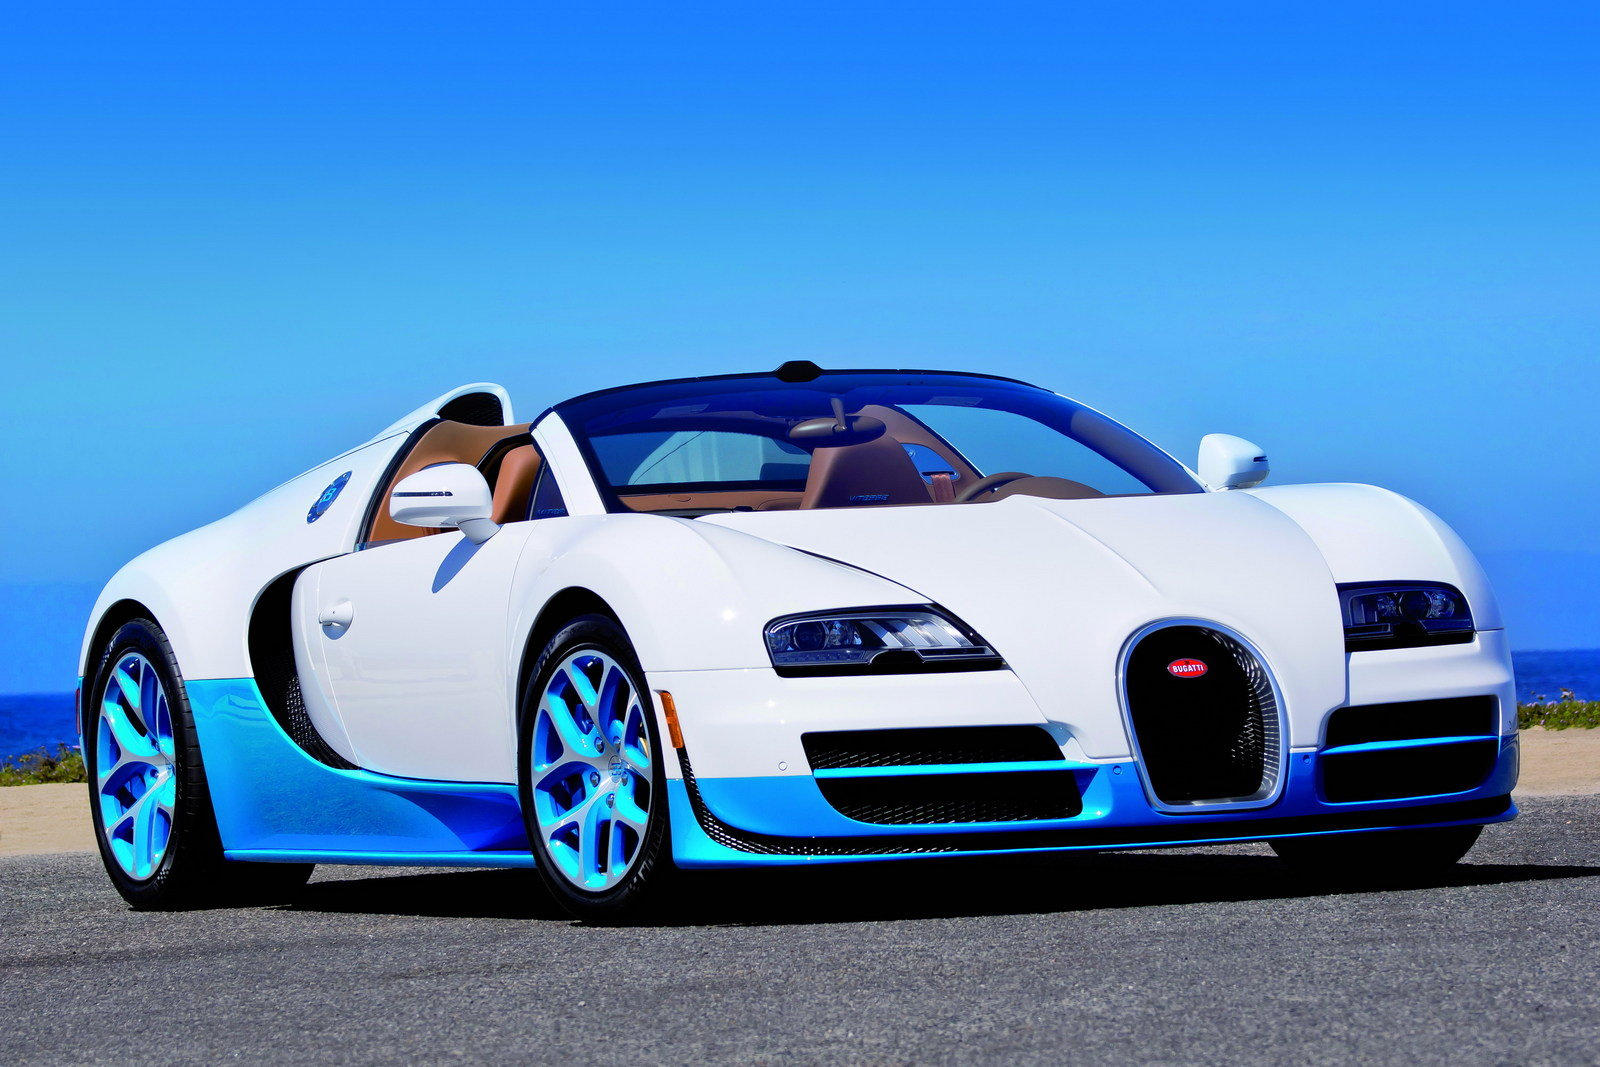 2012 bugatti veyron 16 4 grand sport vitesse bianco and new light blue picture 475178 car. Black Bedroom Furniture Sets. Home Design Ideas